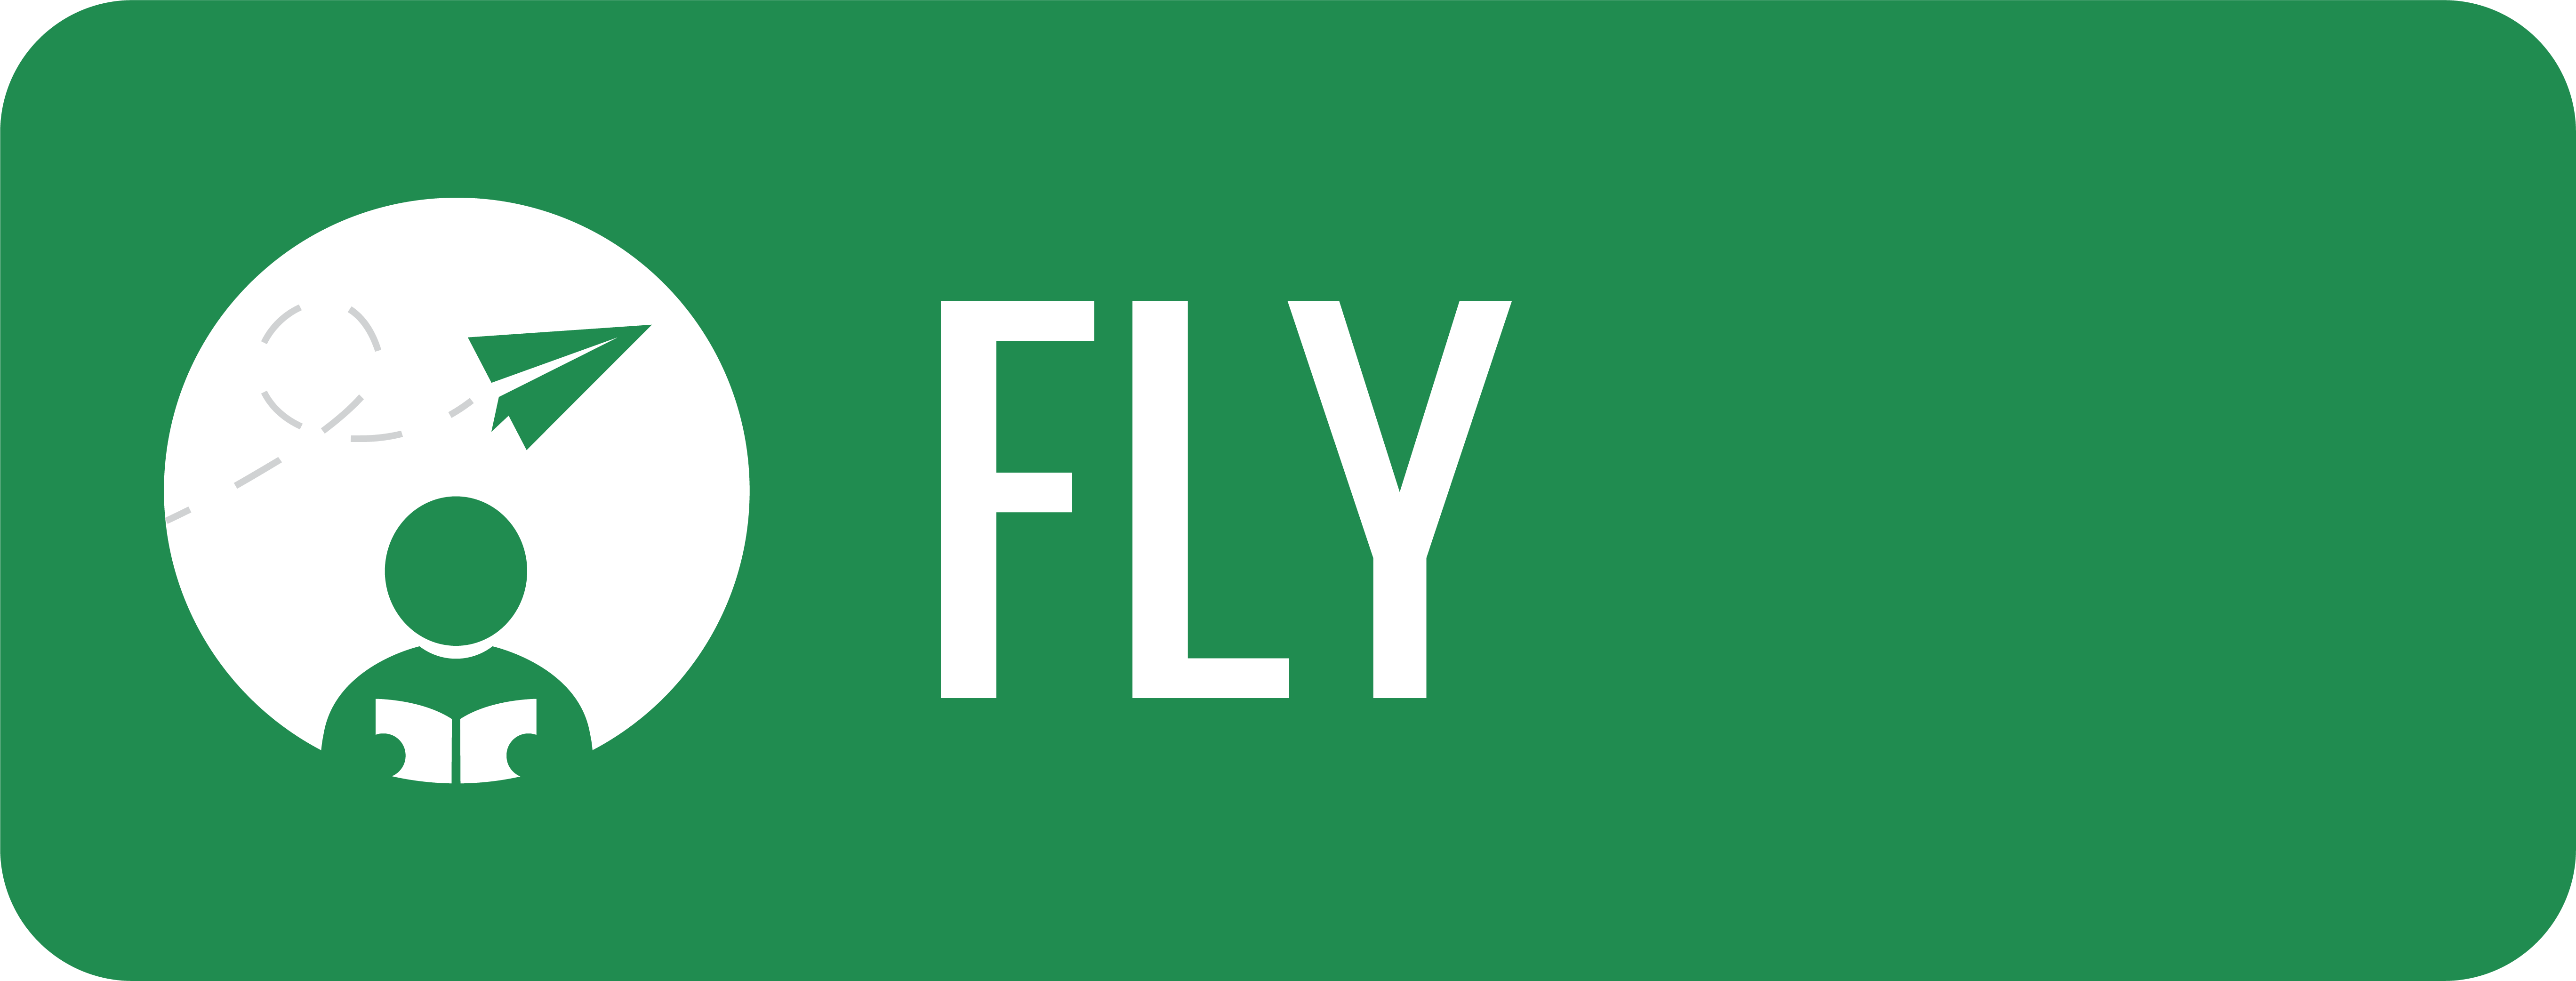 FLYBUTTON